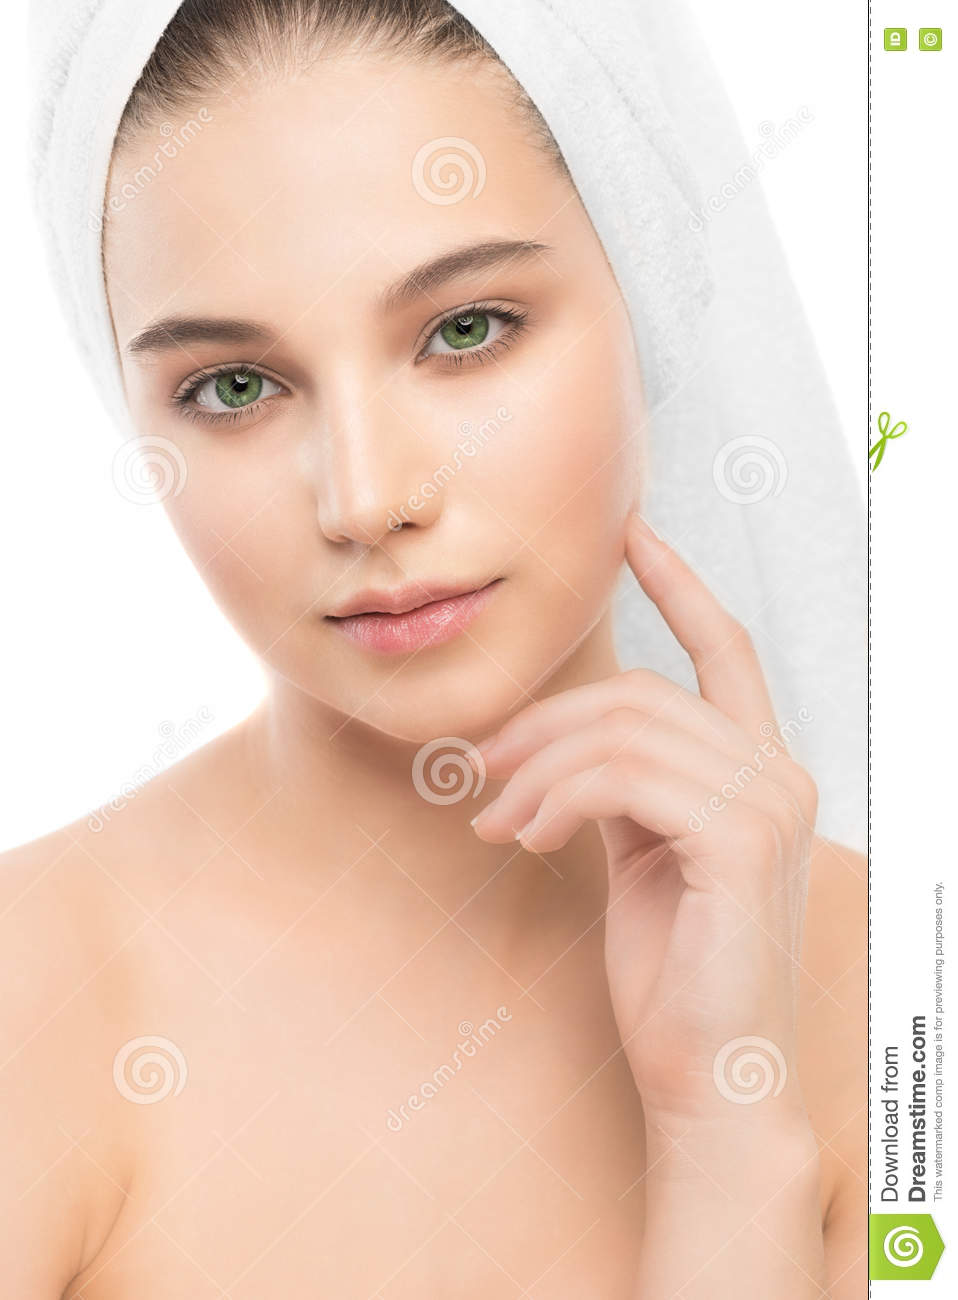 how to clean face skin